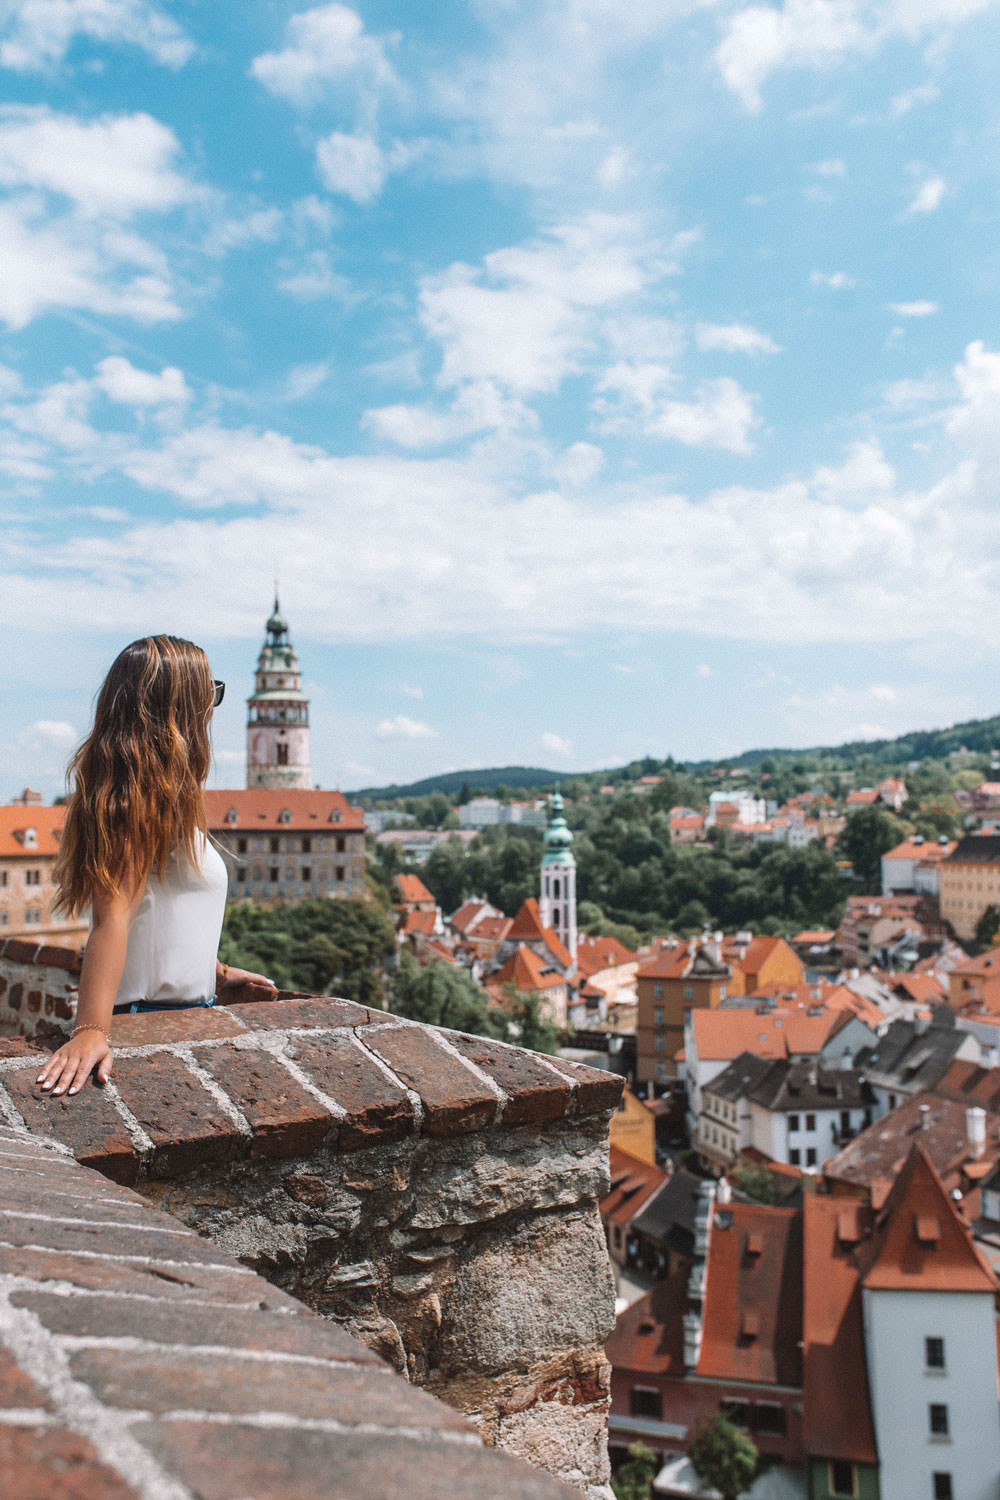 What to see in the Czech Republic